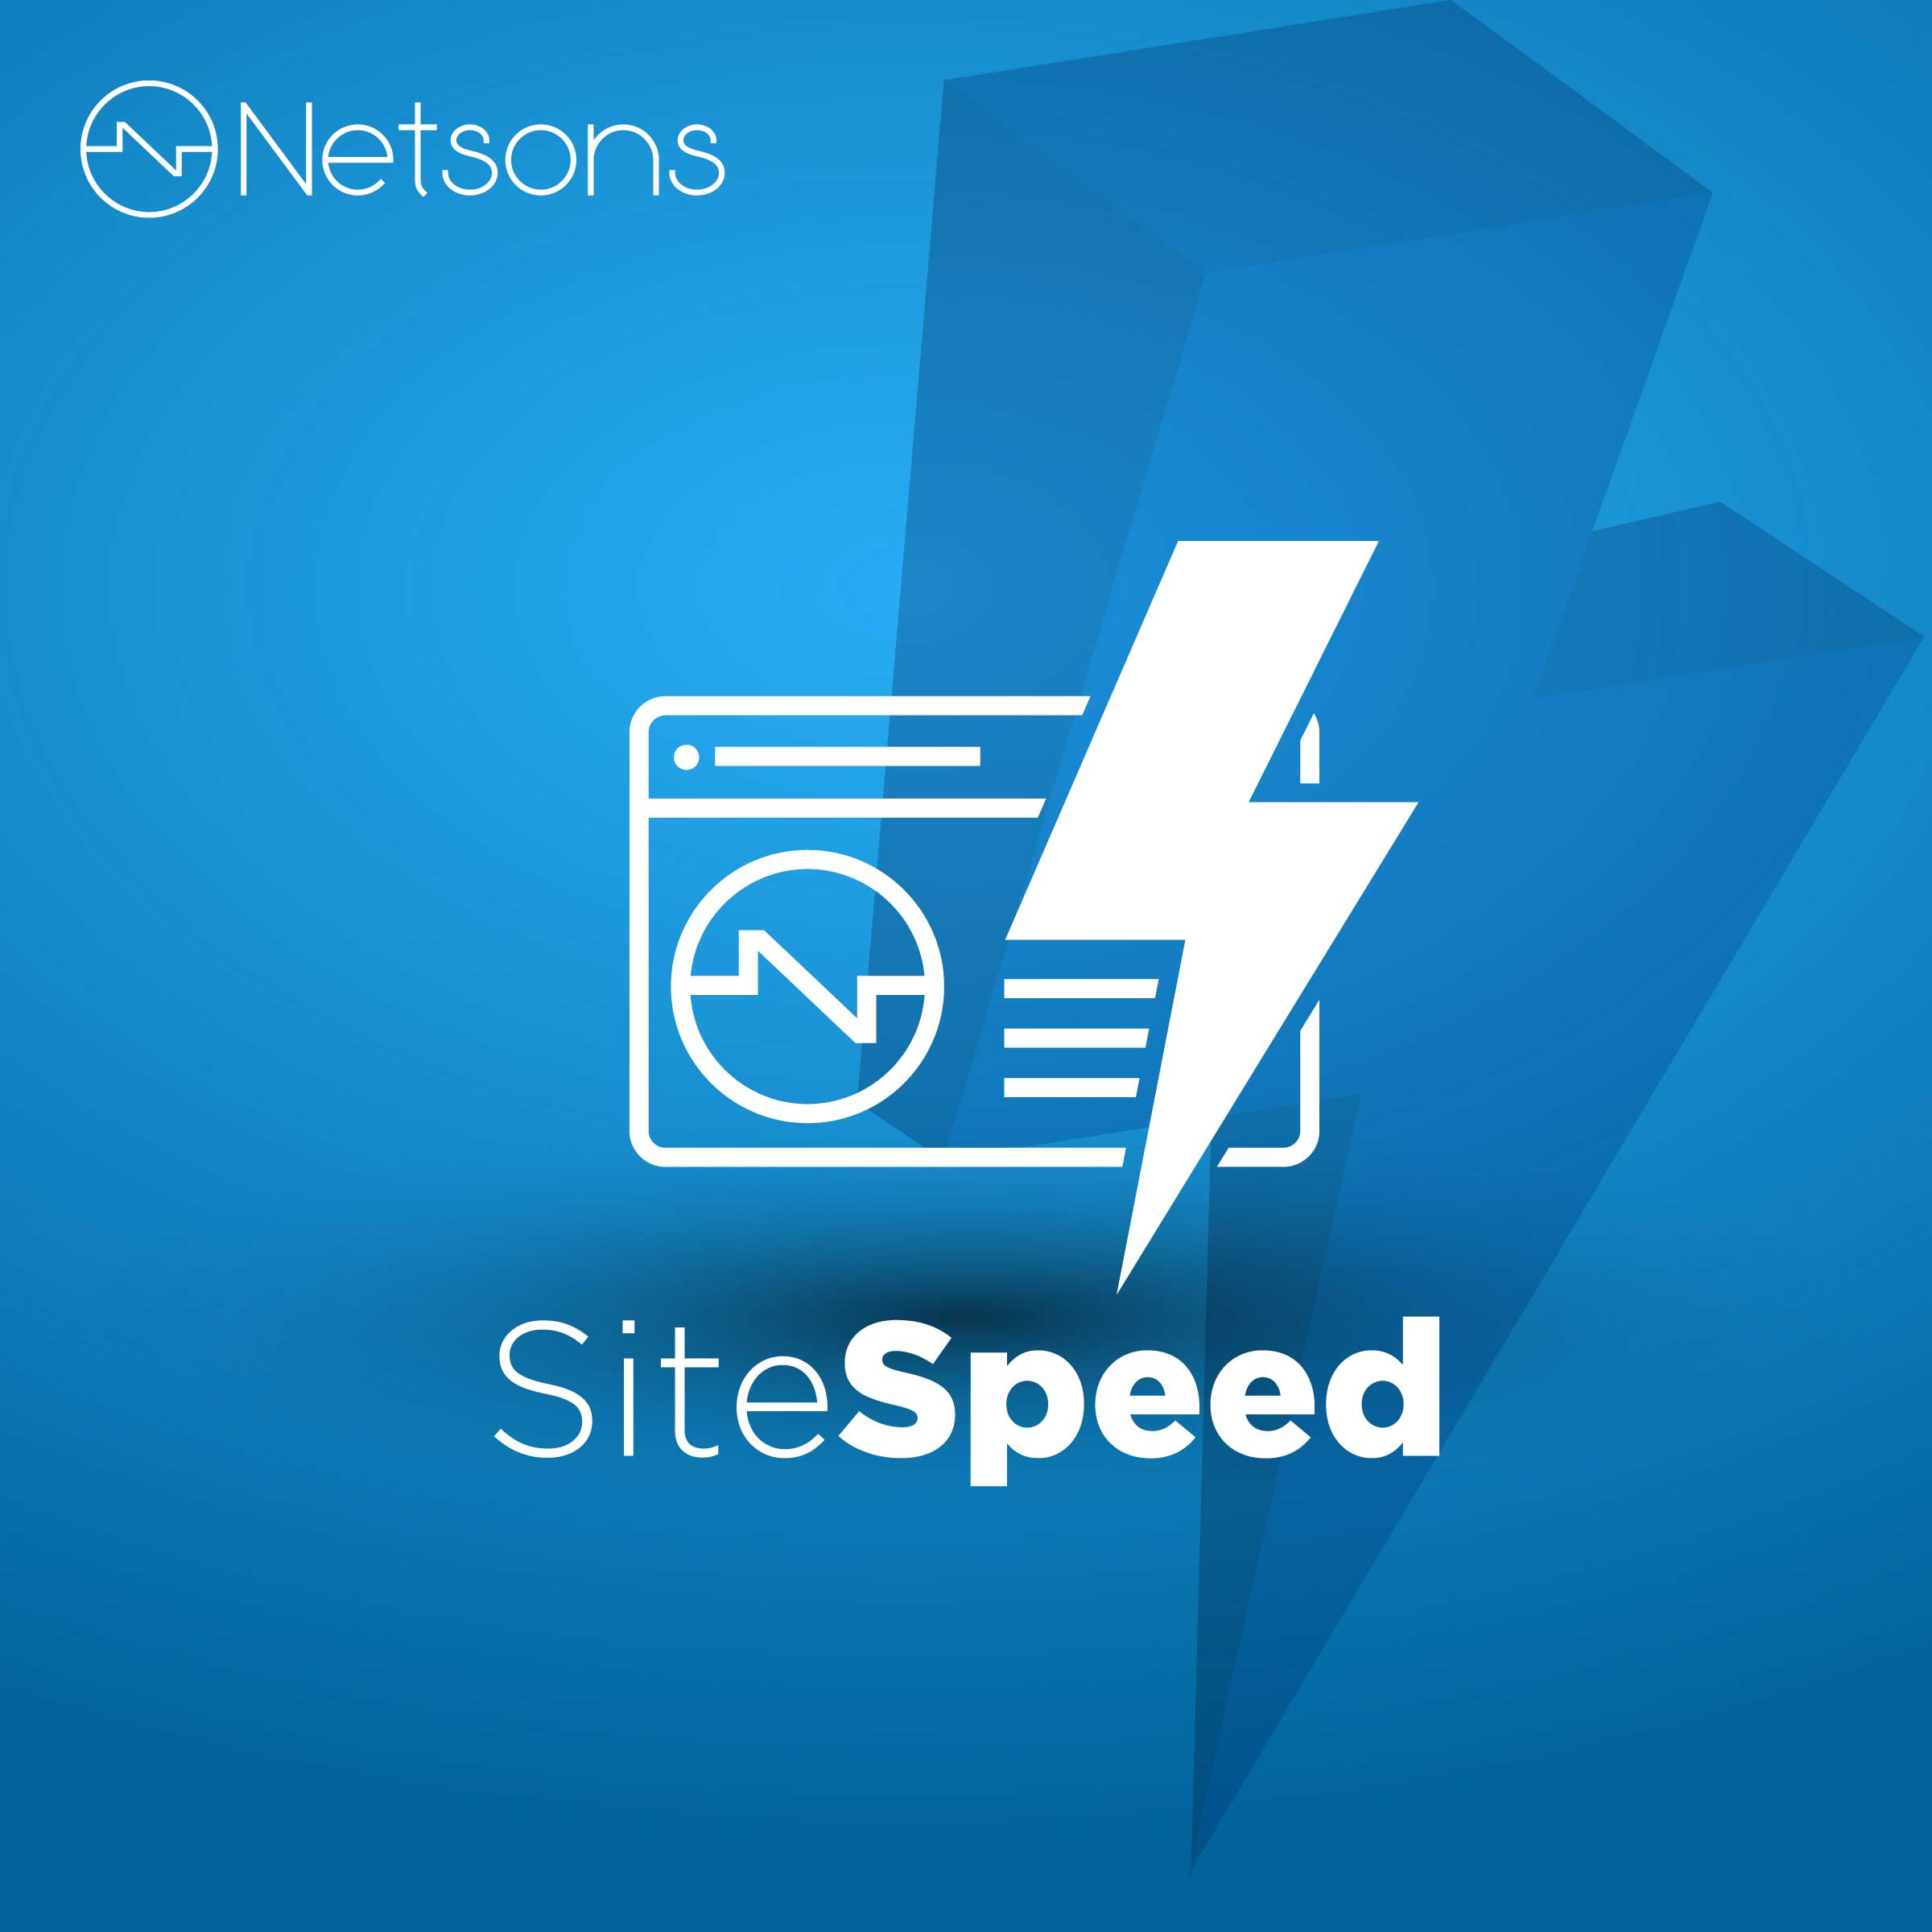 netsons sitespeed cover